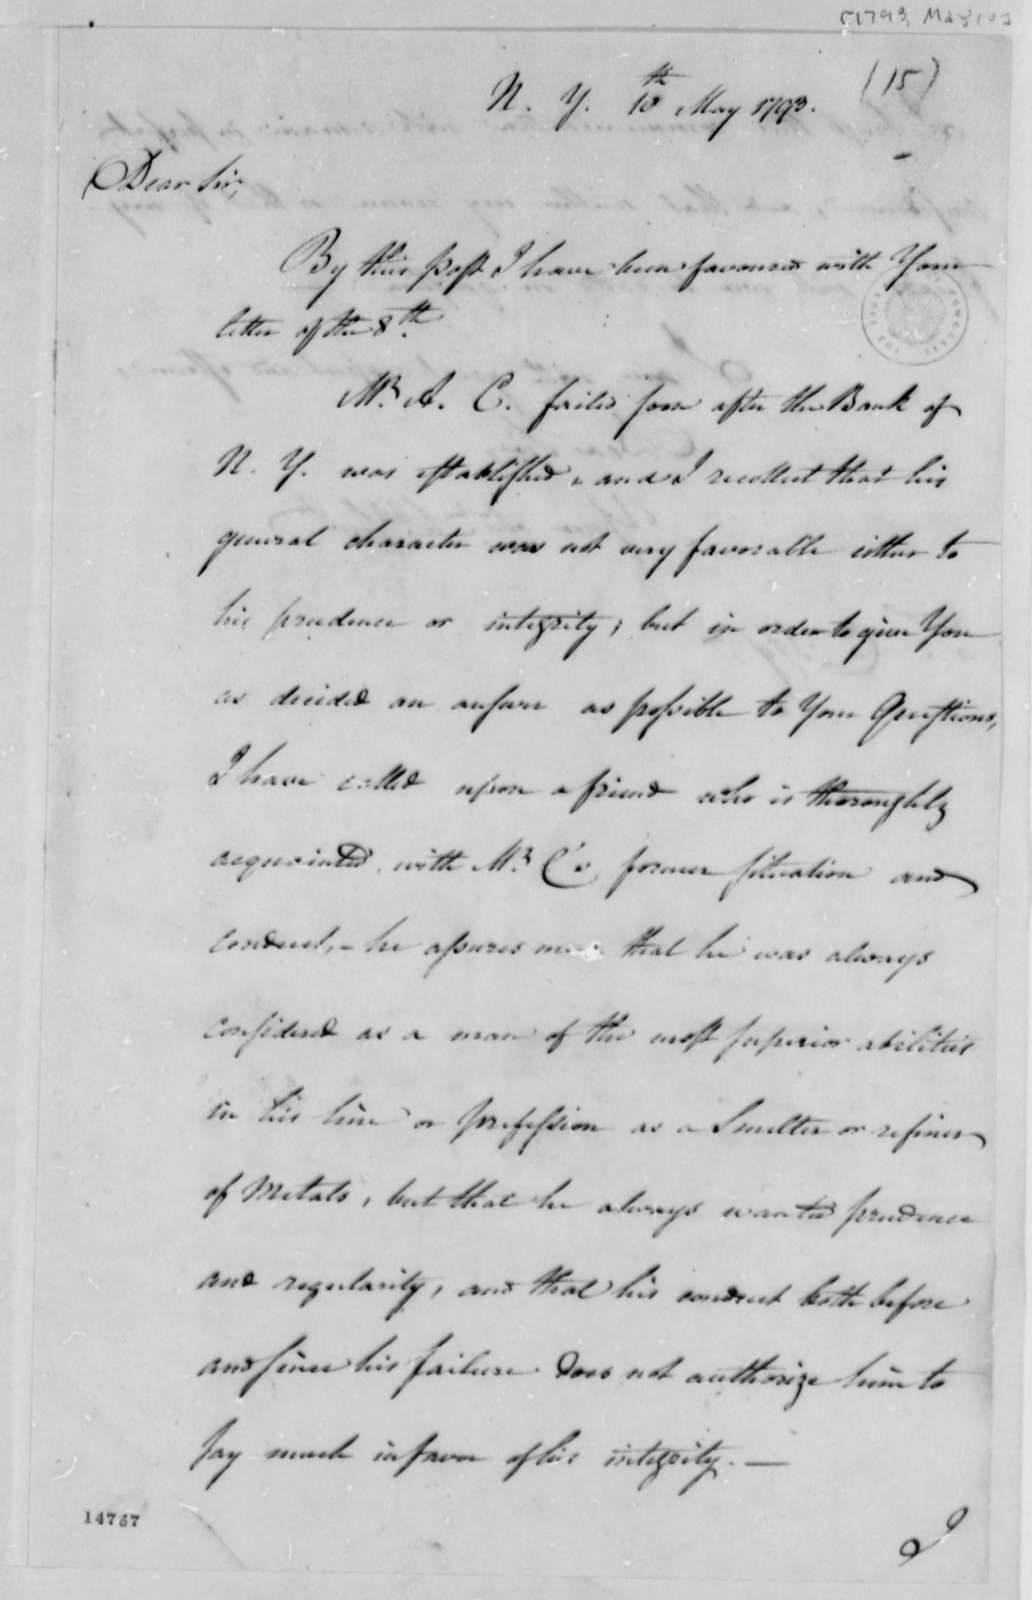 Unknown to Tench Coxe, May 10, 1793